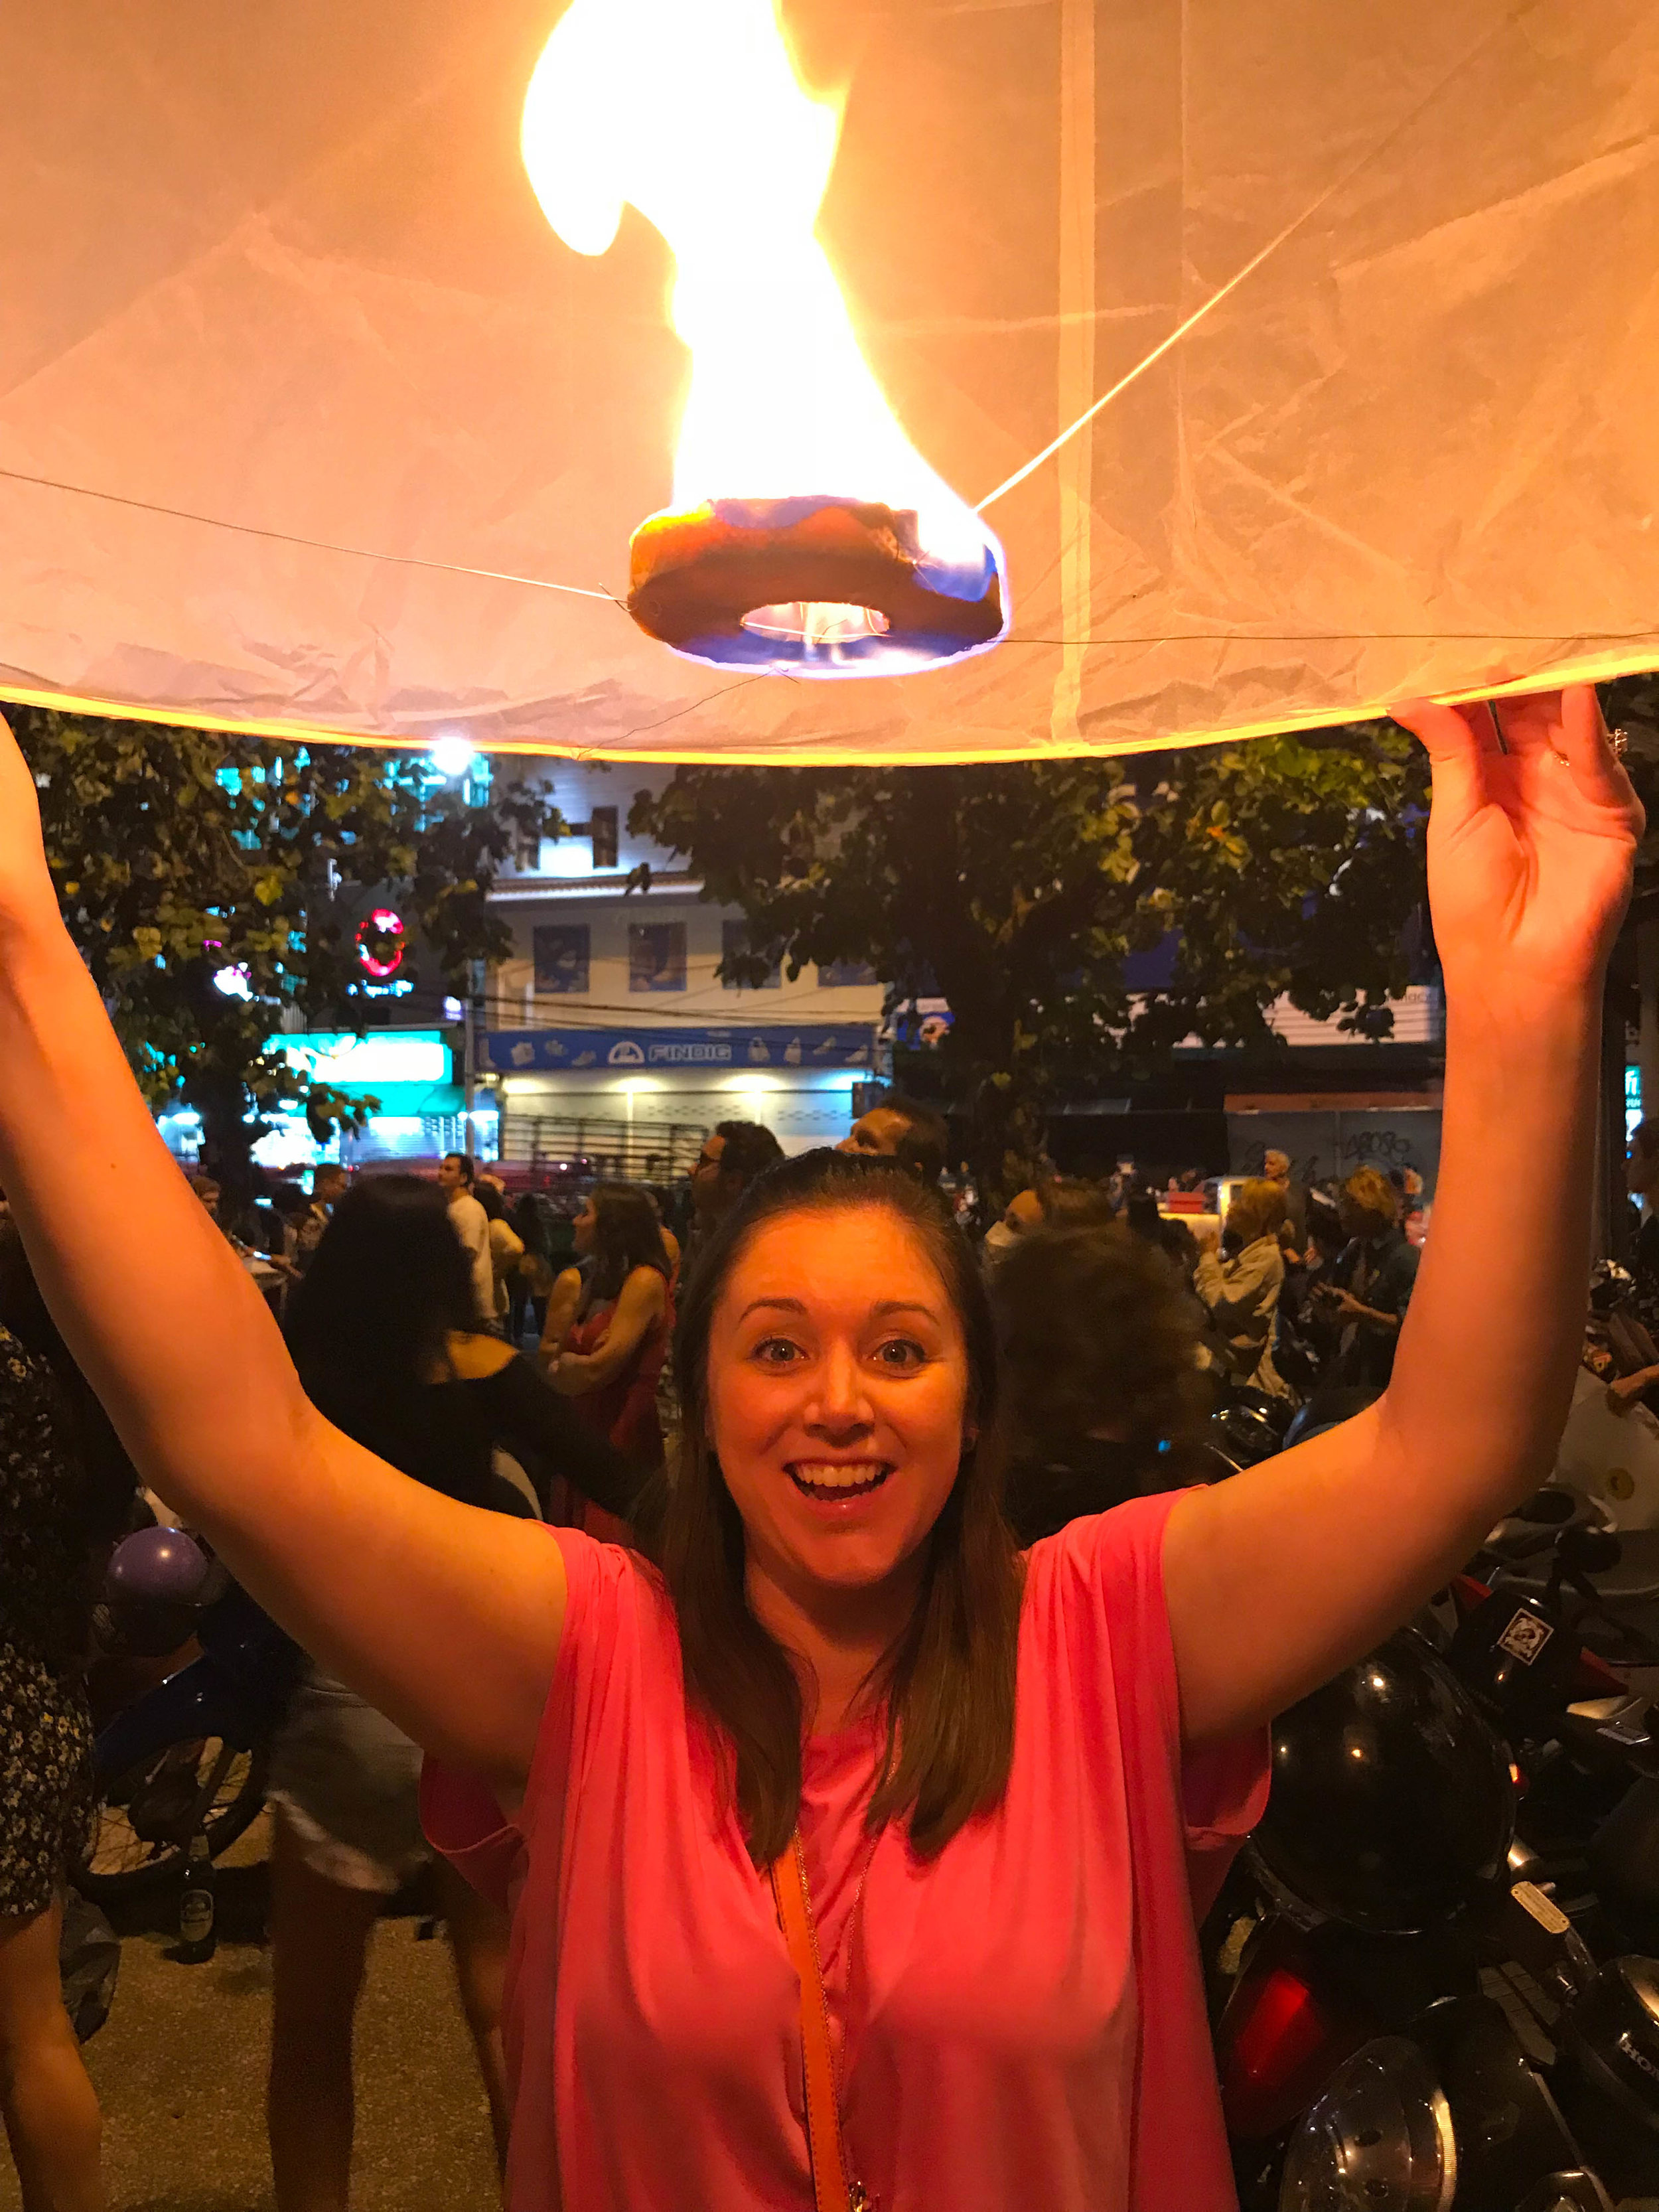 New Years Eve Lanterns in Chiang Mai Thailand